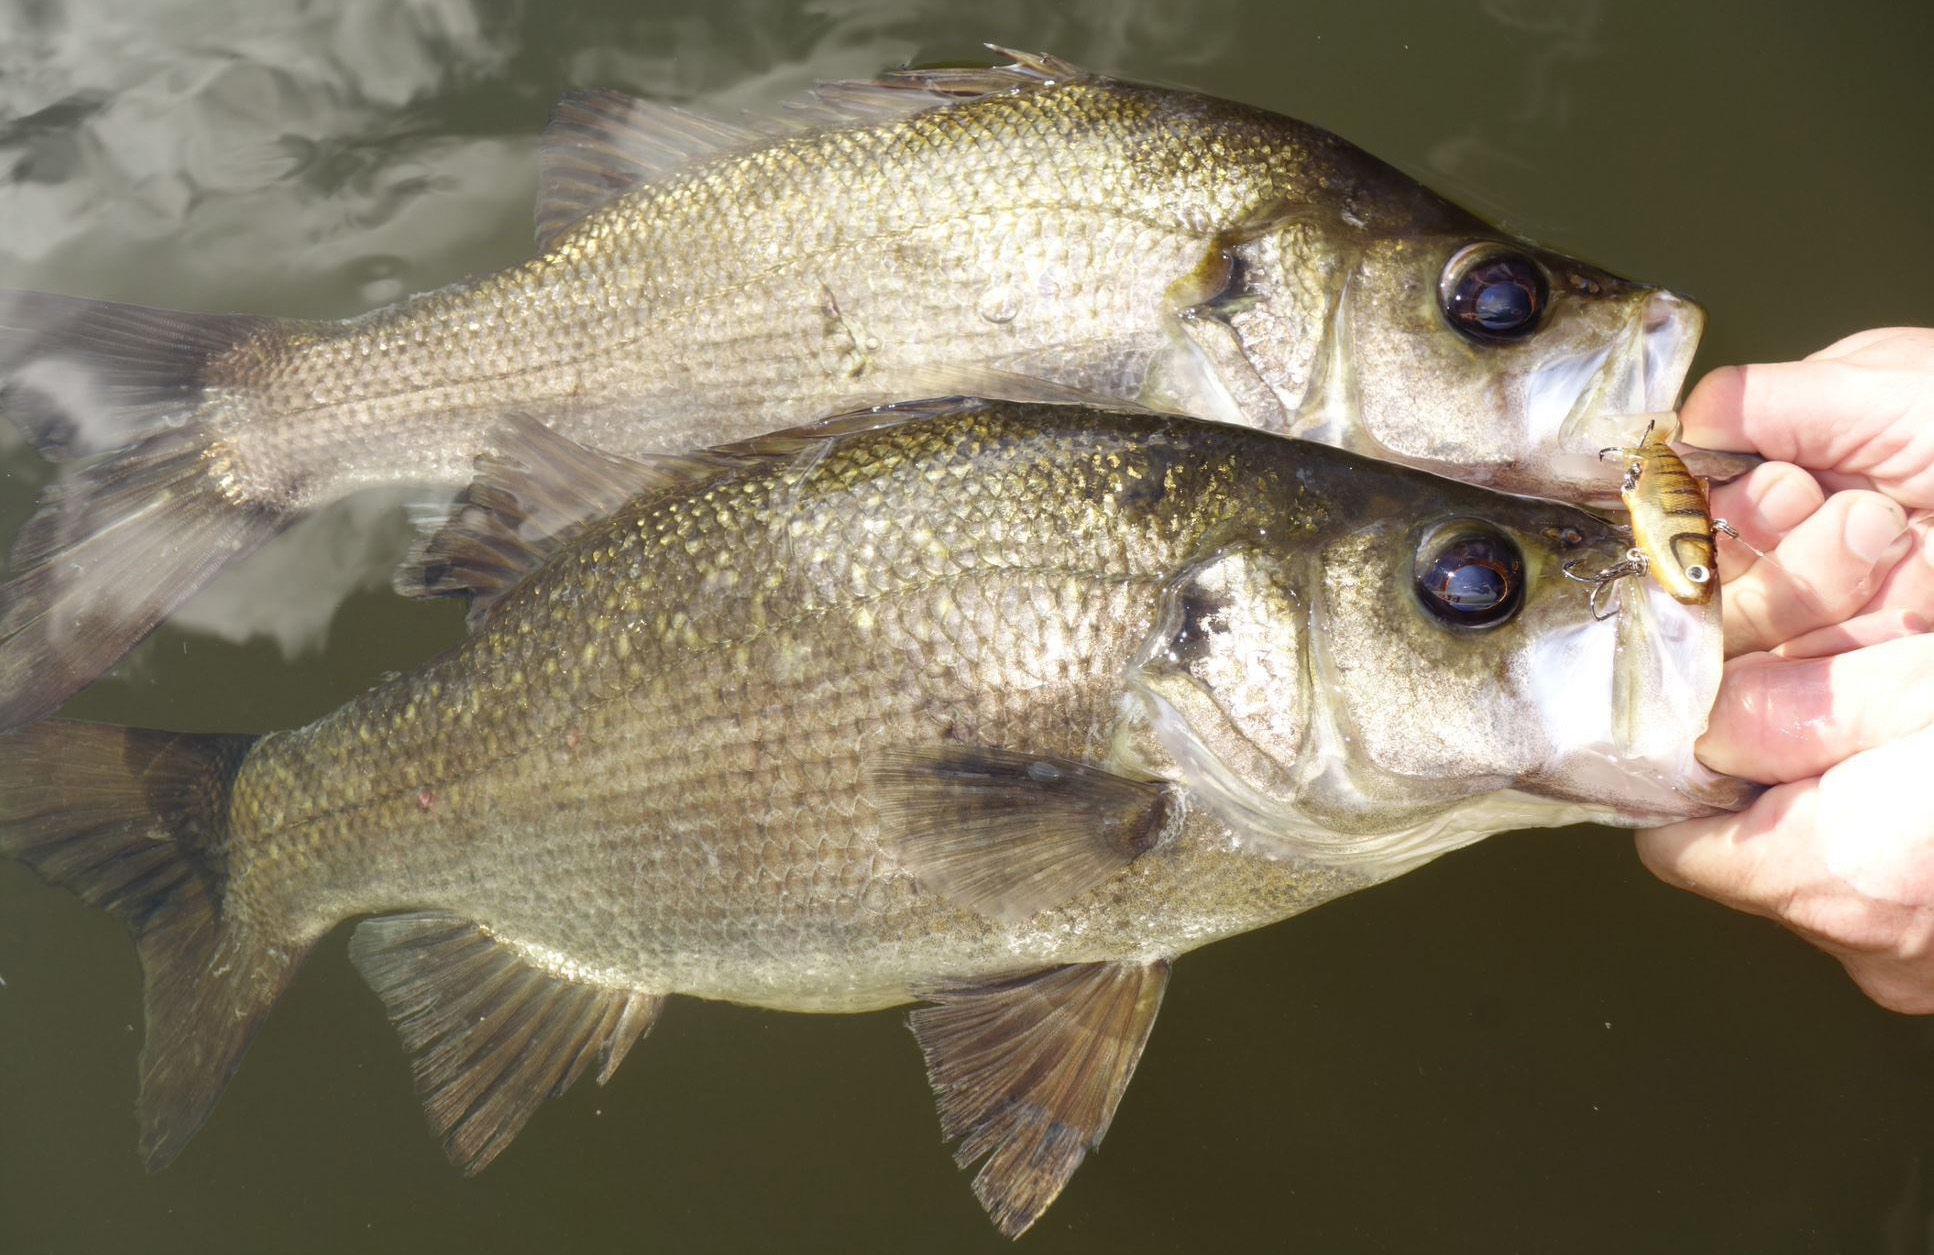 two Estuary perch caught and held by person's hands